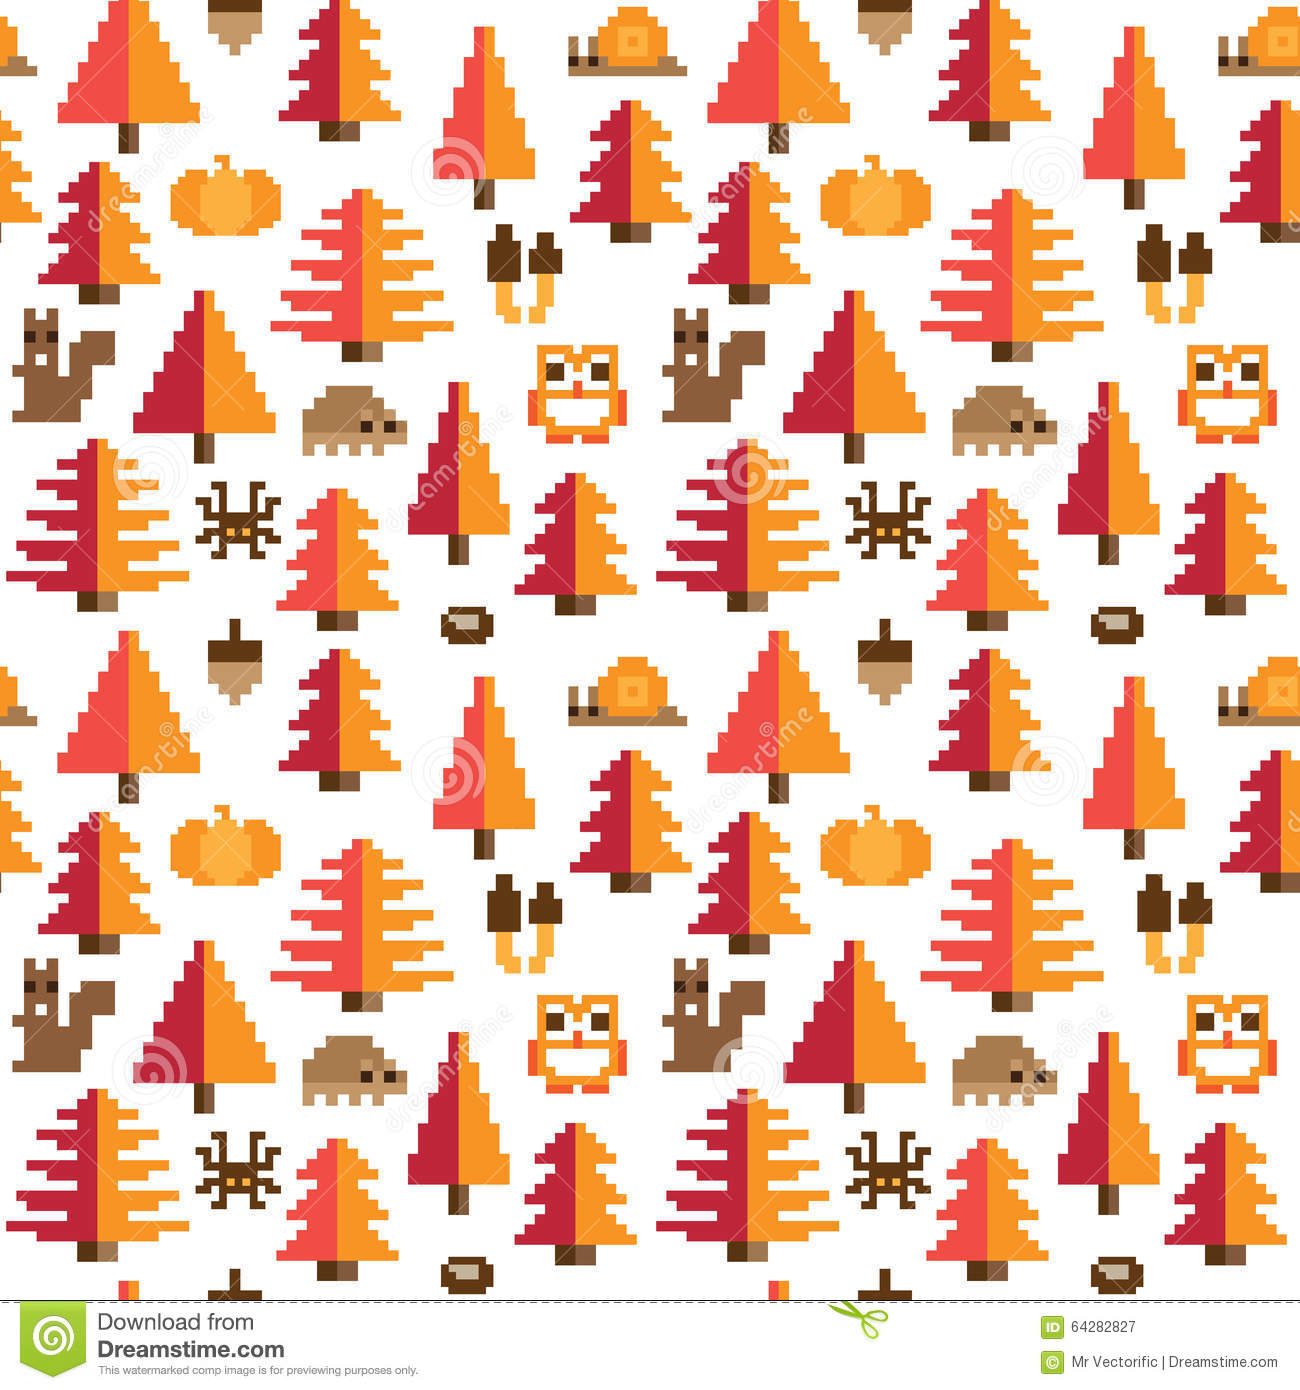 Fall Owl Desktop Wallpaper Colorful Seamless Pixel Pattern With Autumn Elements Stock